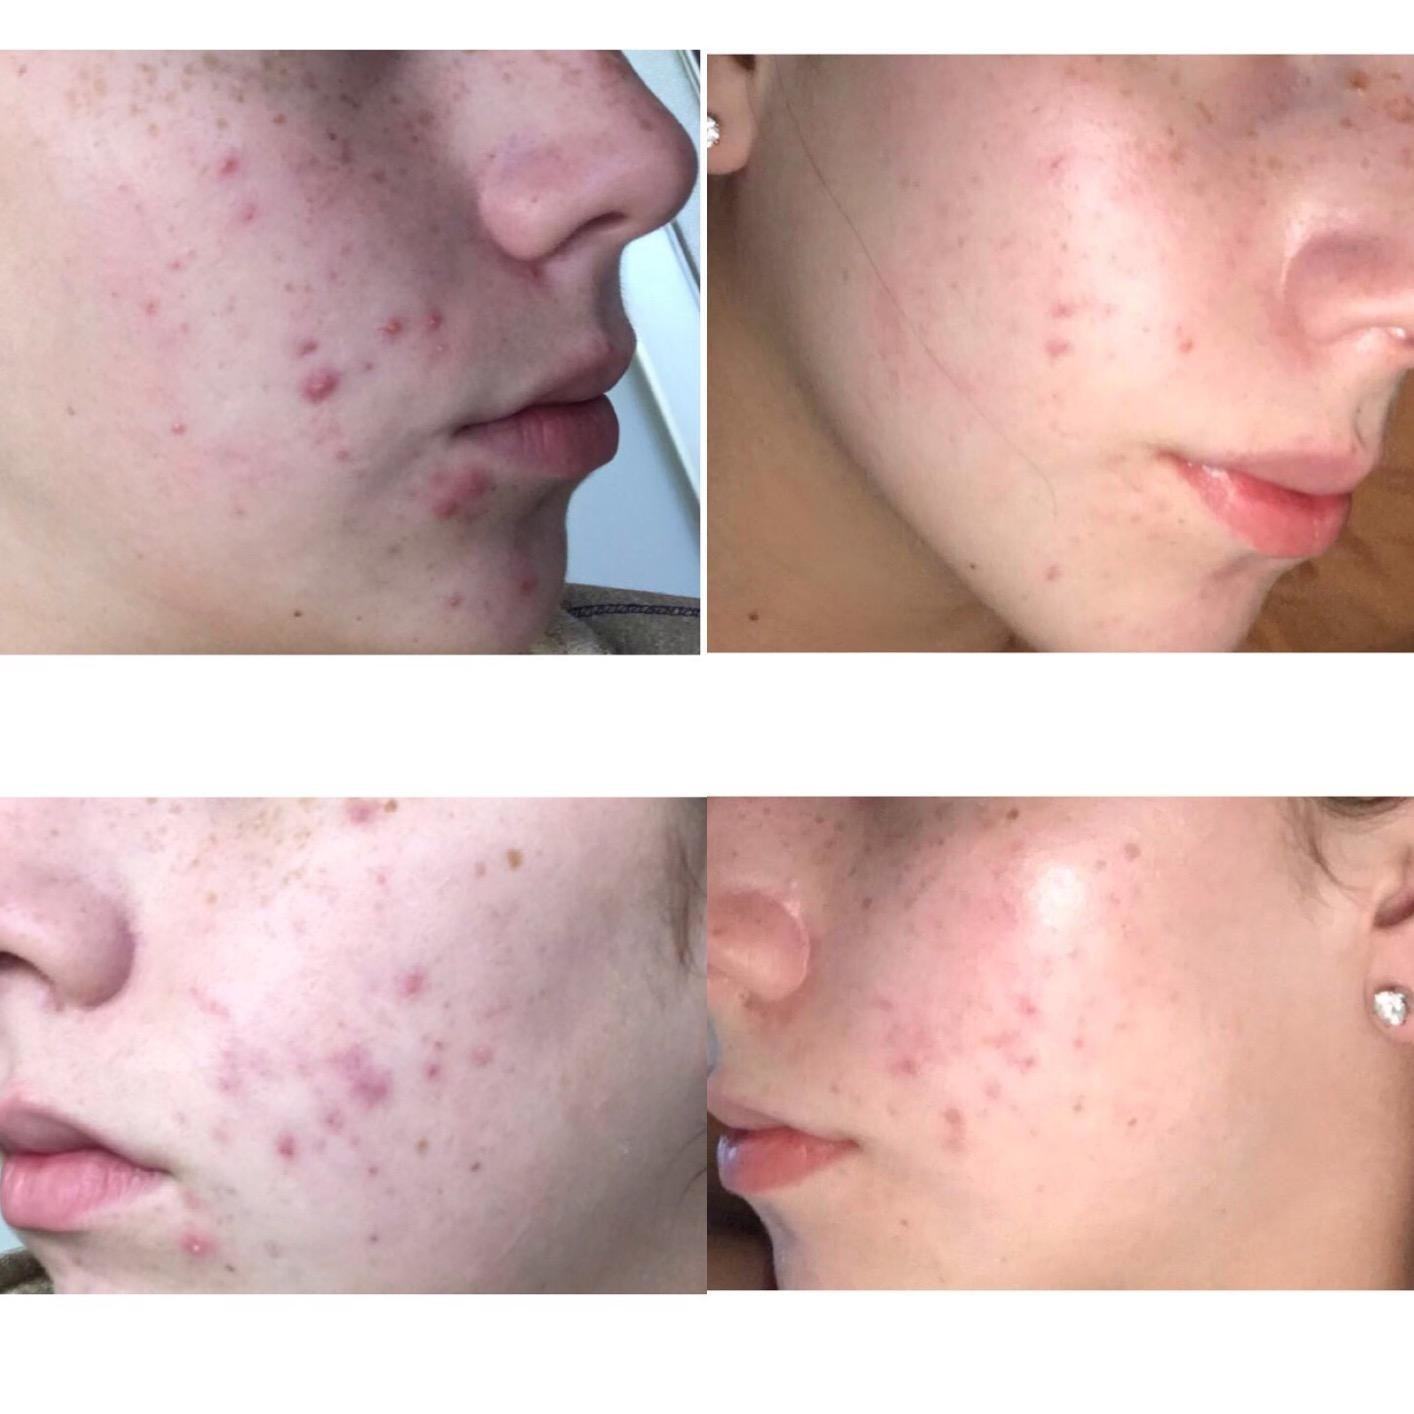 Both cheeks of a reviewer before and after using the mask, with very reduced acne after